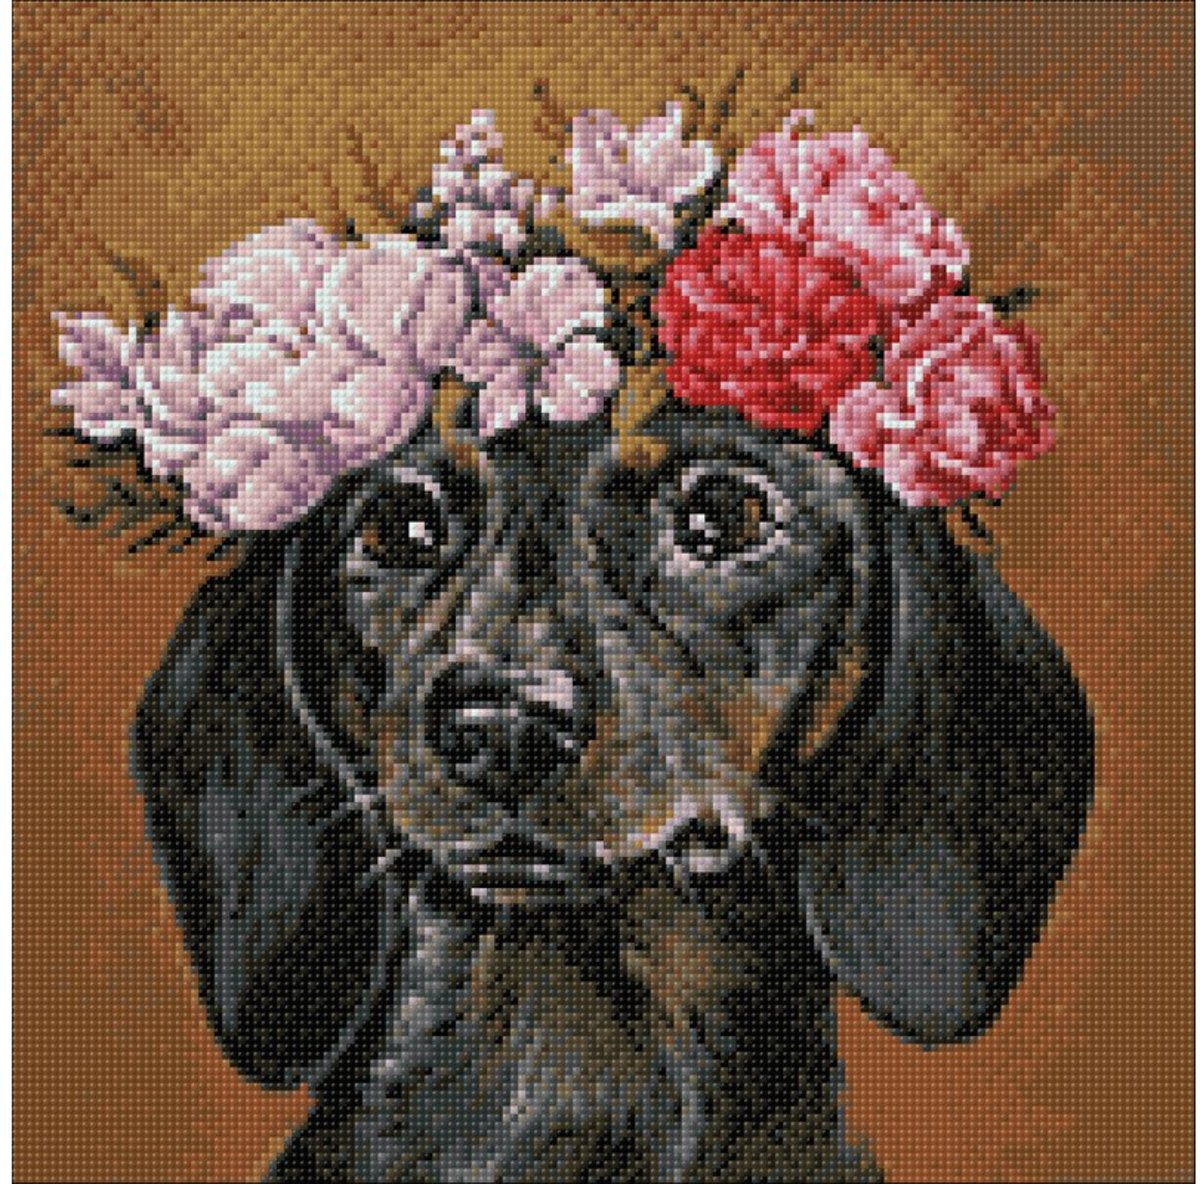 Wizardi Diamond Painting Kit Dachshund in Flowers WD2465